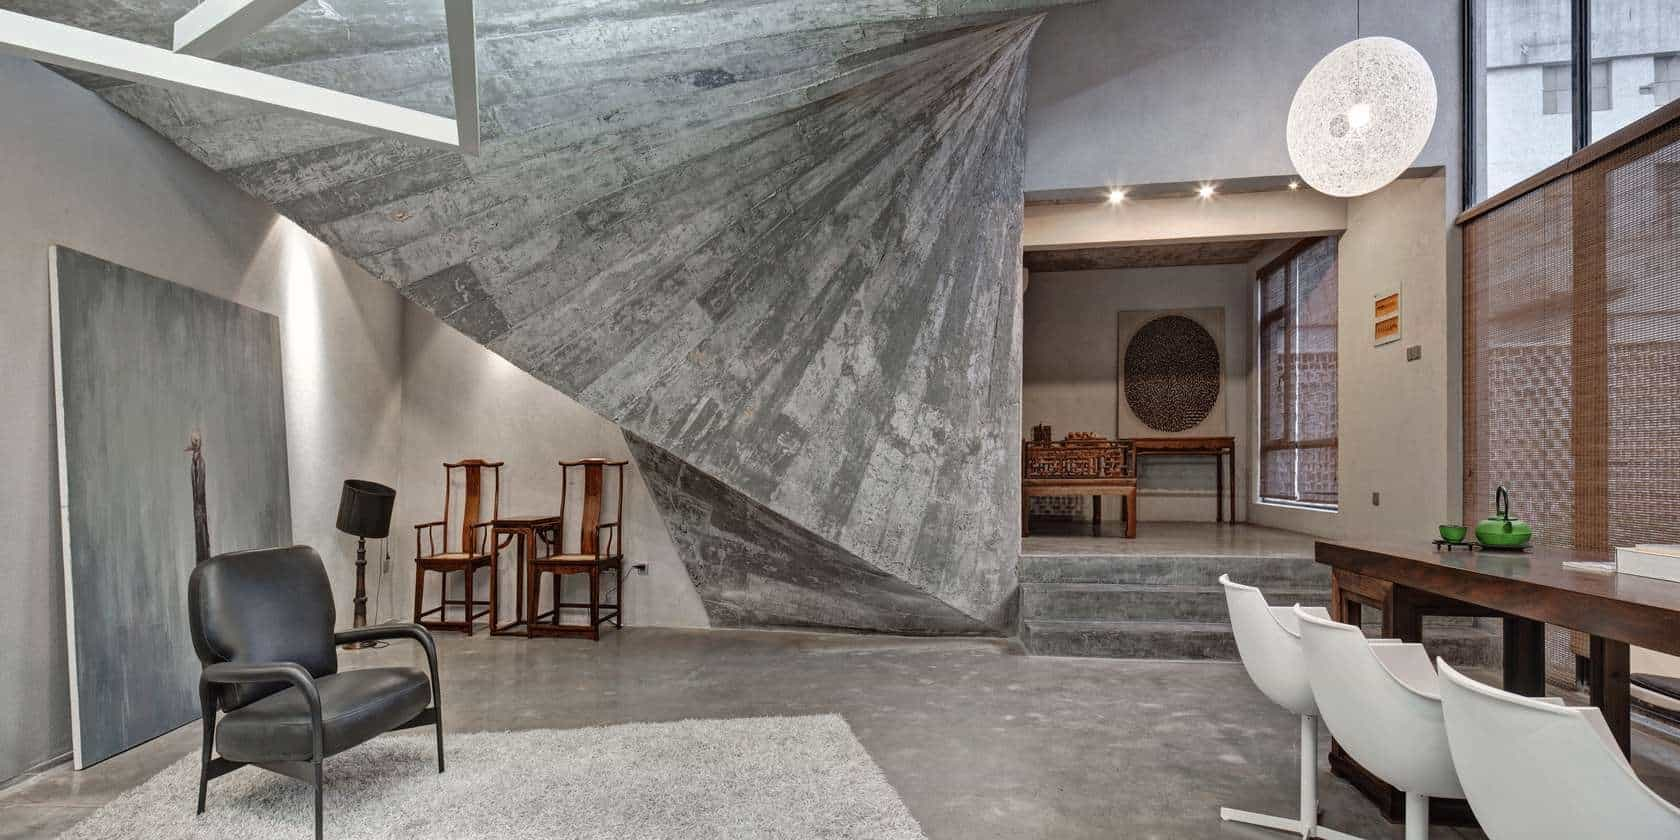 Concrete House Interior Advanced Digital Architecture And A Tree Define This